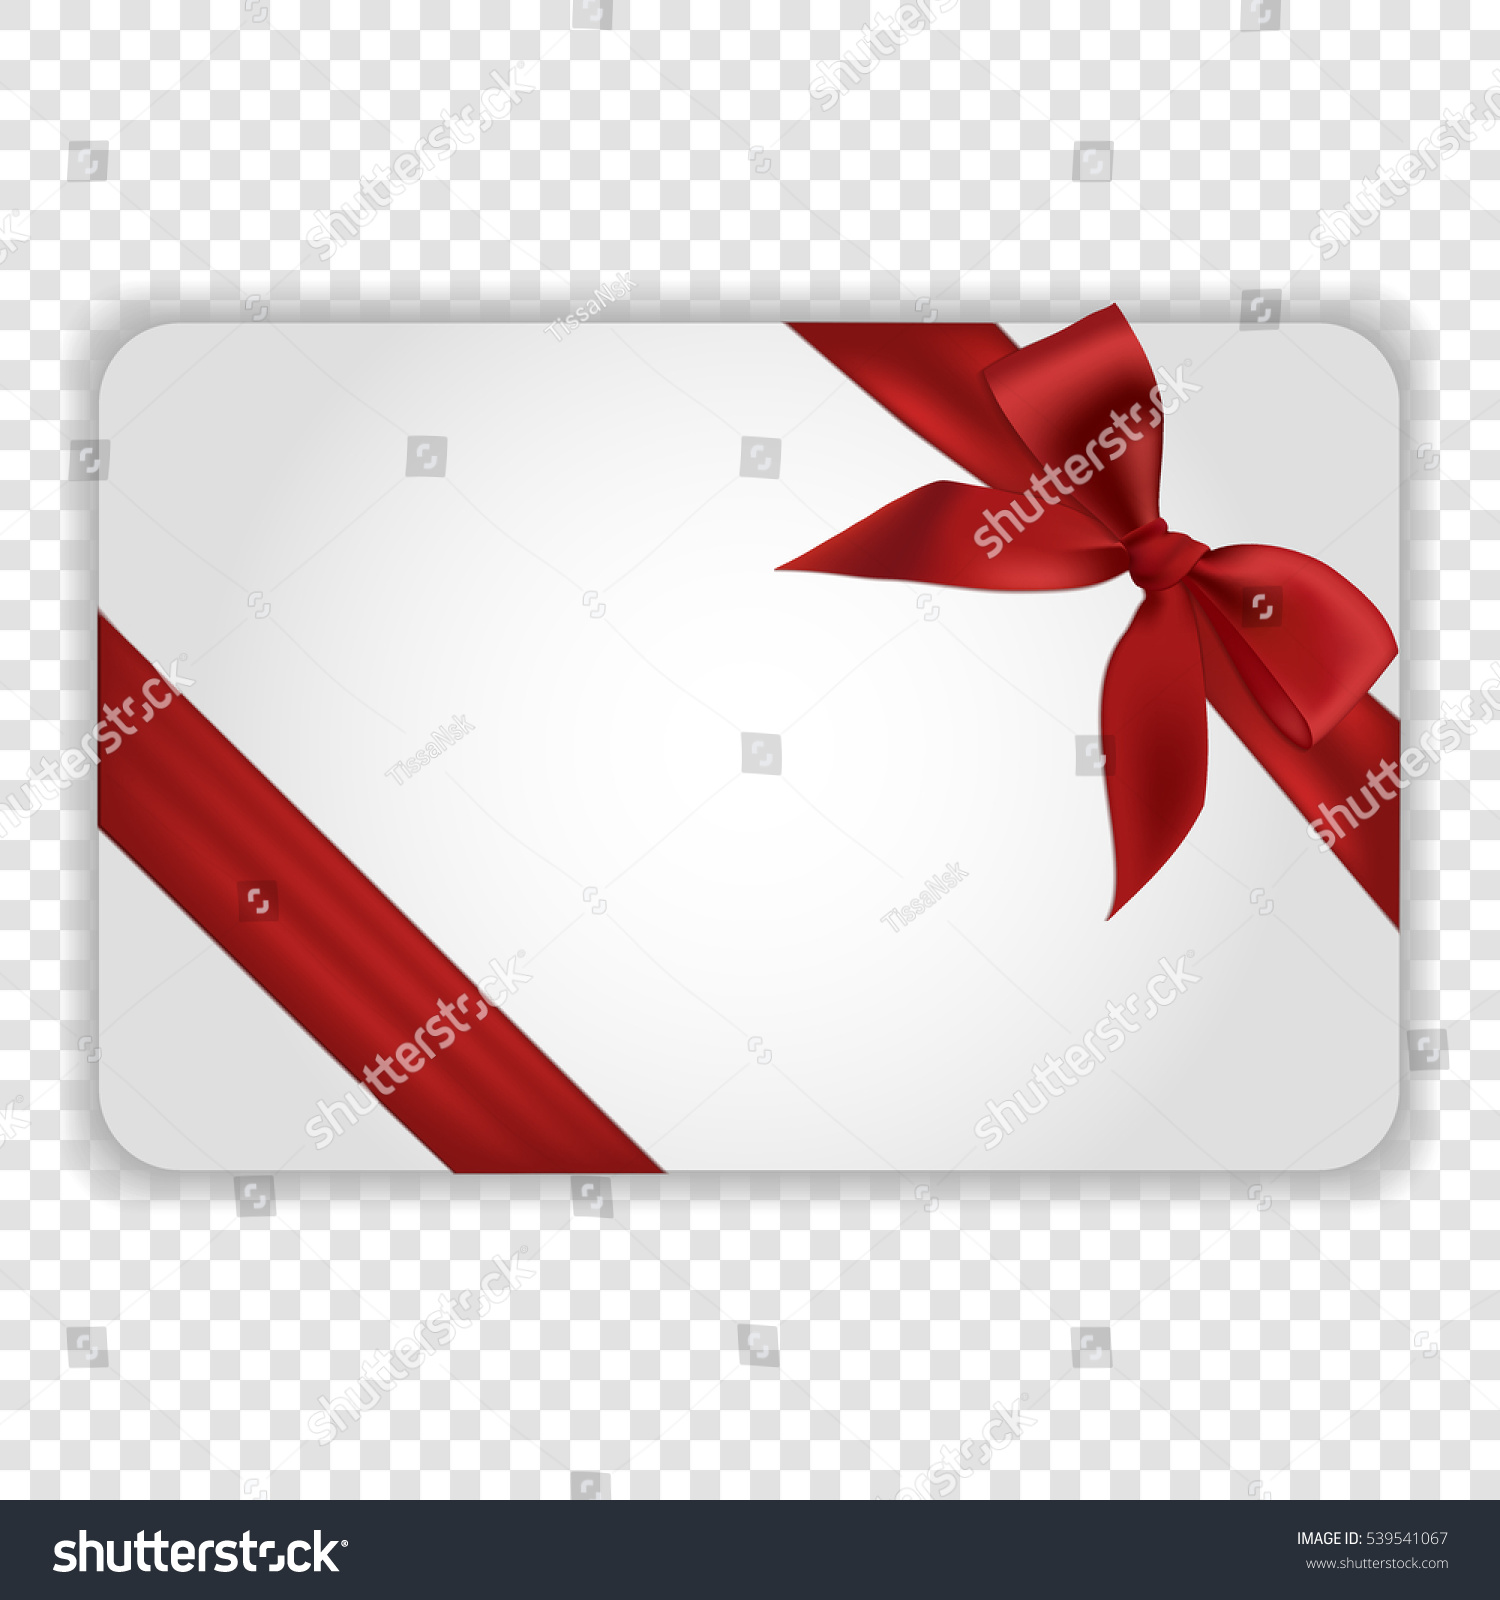 Blank white gift card template red stock vector 539541067 blank white gift card template red stock vector 539541067 shutterstock pronofoot35fo Choice Image